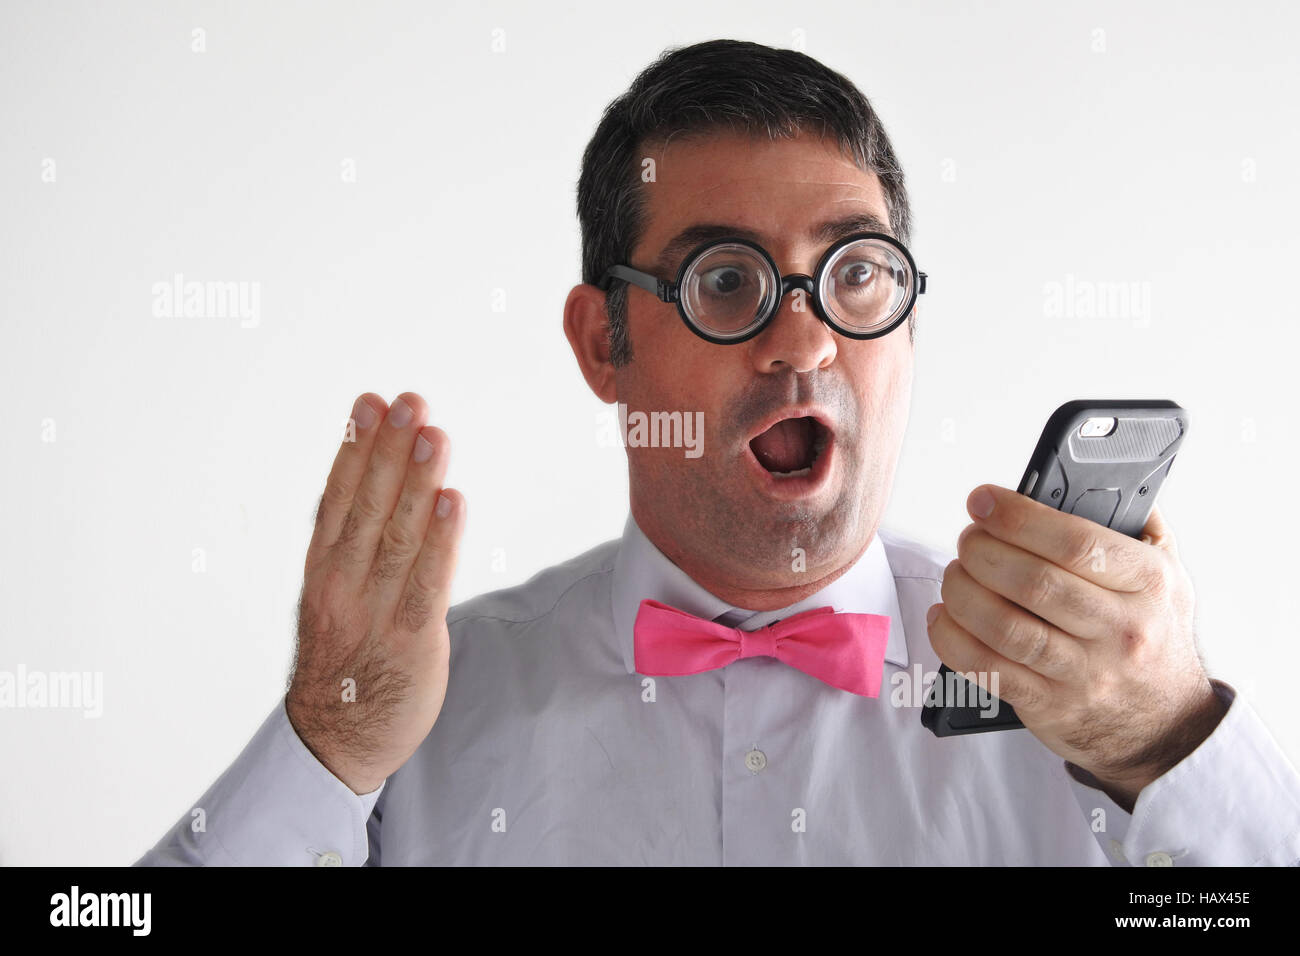 Surprised Geeky man receives a surprising message or phone call.   Communication concept. real people copy space - Stock Image